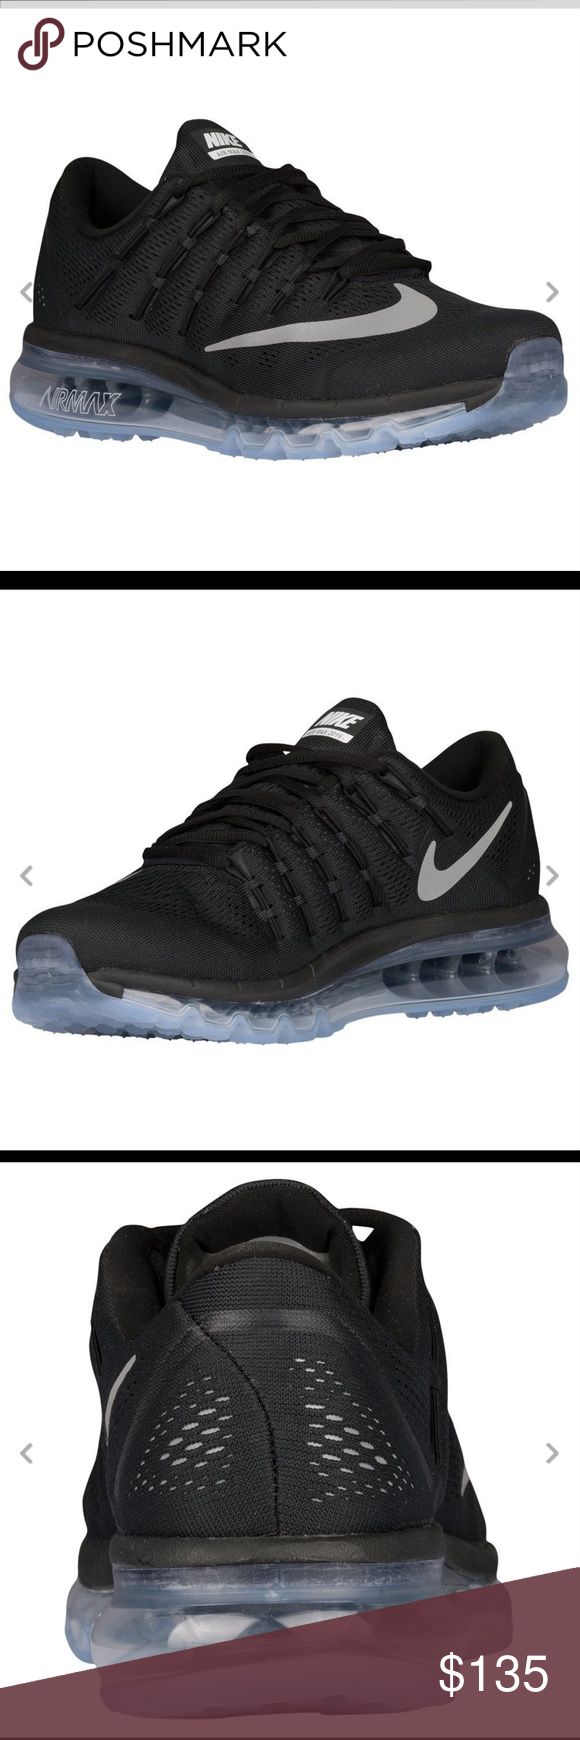 Nike Air Max 2016 Men's Running Shoes The Nike Air Max 2016 Mens Running Shoe is built with an Engineered Mesh base that appears to sit atop the same sole.The body of the silhouette looks to have a shape to it that also includes a new embedding Flywire support and a Nike Swoosh on the toe area.. Innovative AIR MAX 2016 w/better cushioning and even more comfortable fit The midsole adopted the flexible, cushioned, and lightweight 360 max air bag Deep forefoot grooves offer enhanced flexibility…